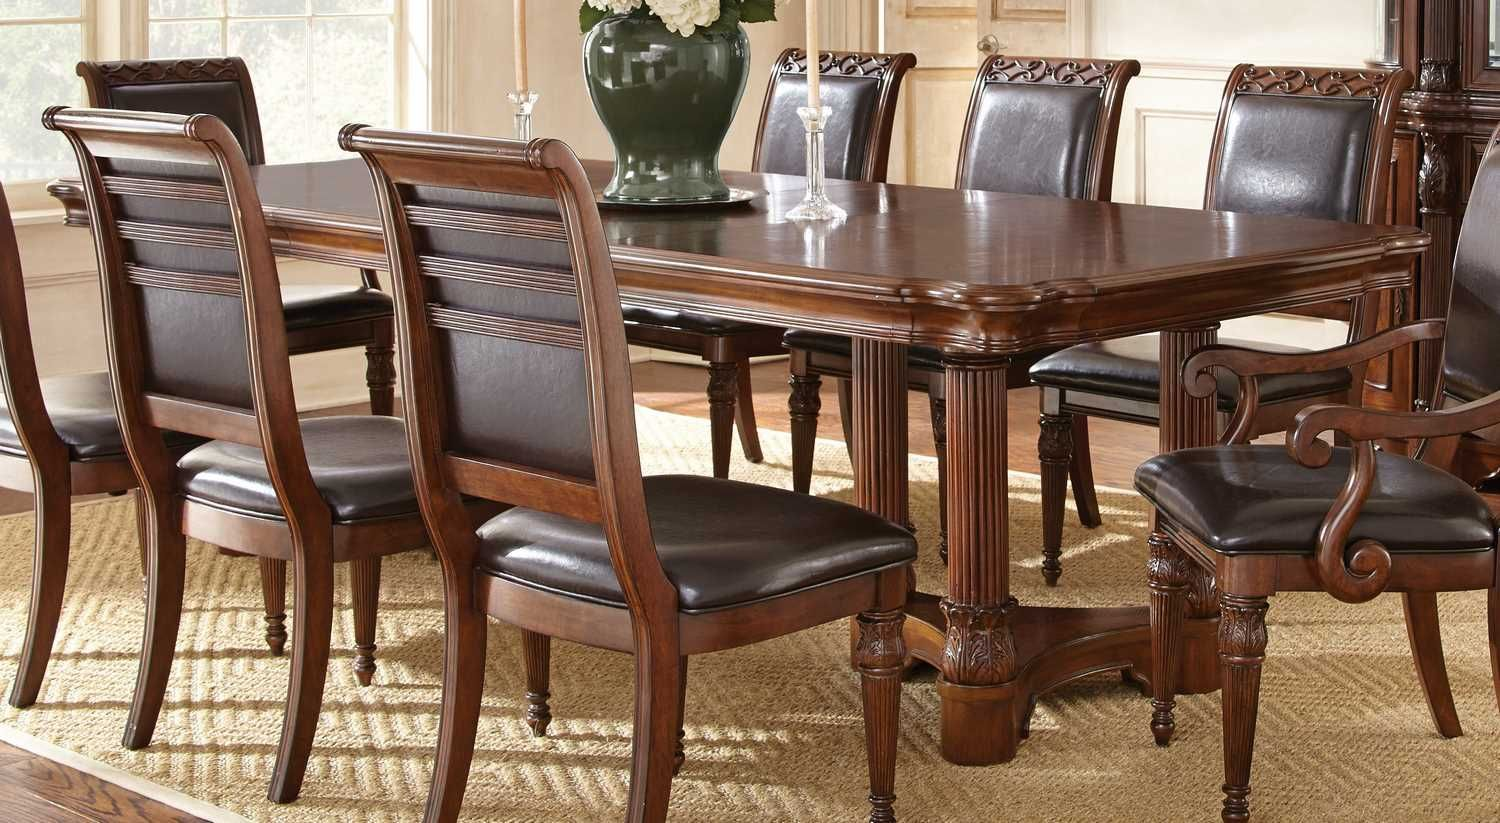 Pay Over Time For Your Furniture Purchaseaffirm & Efurnituremart Alluring Rectangle Dining Room Tables 2018